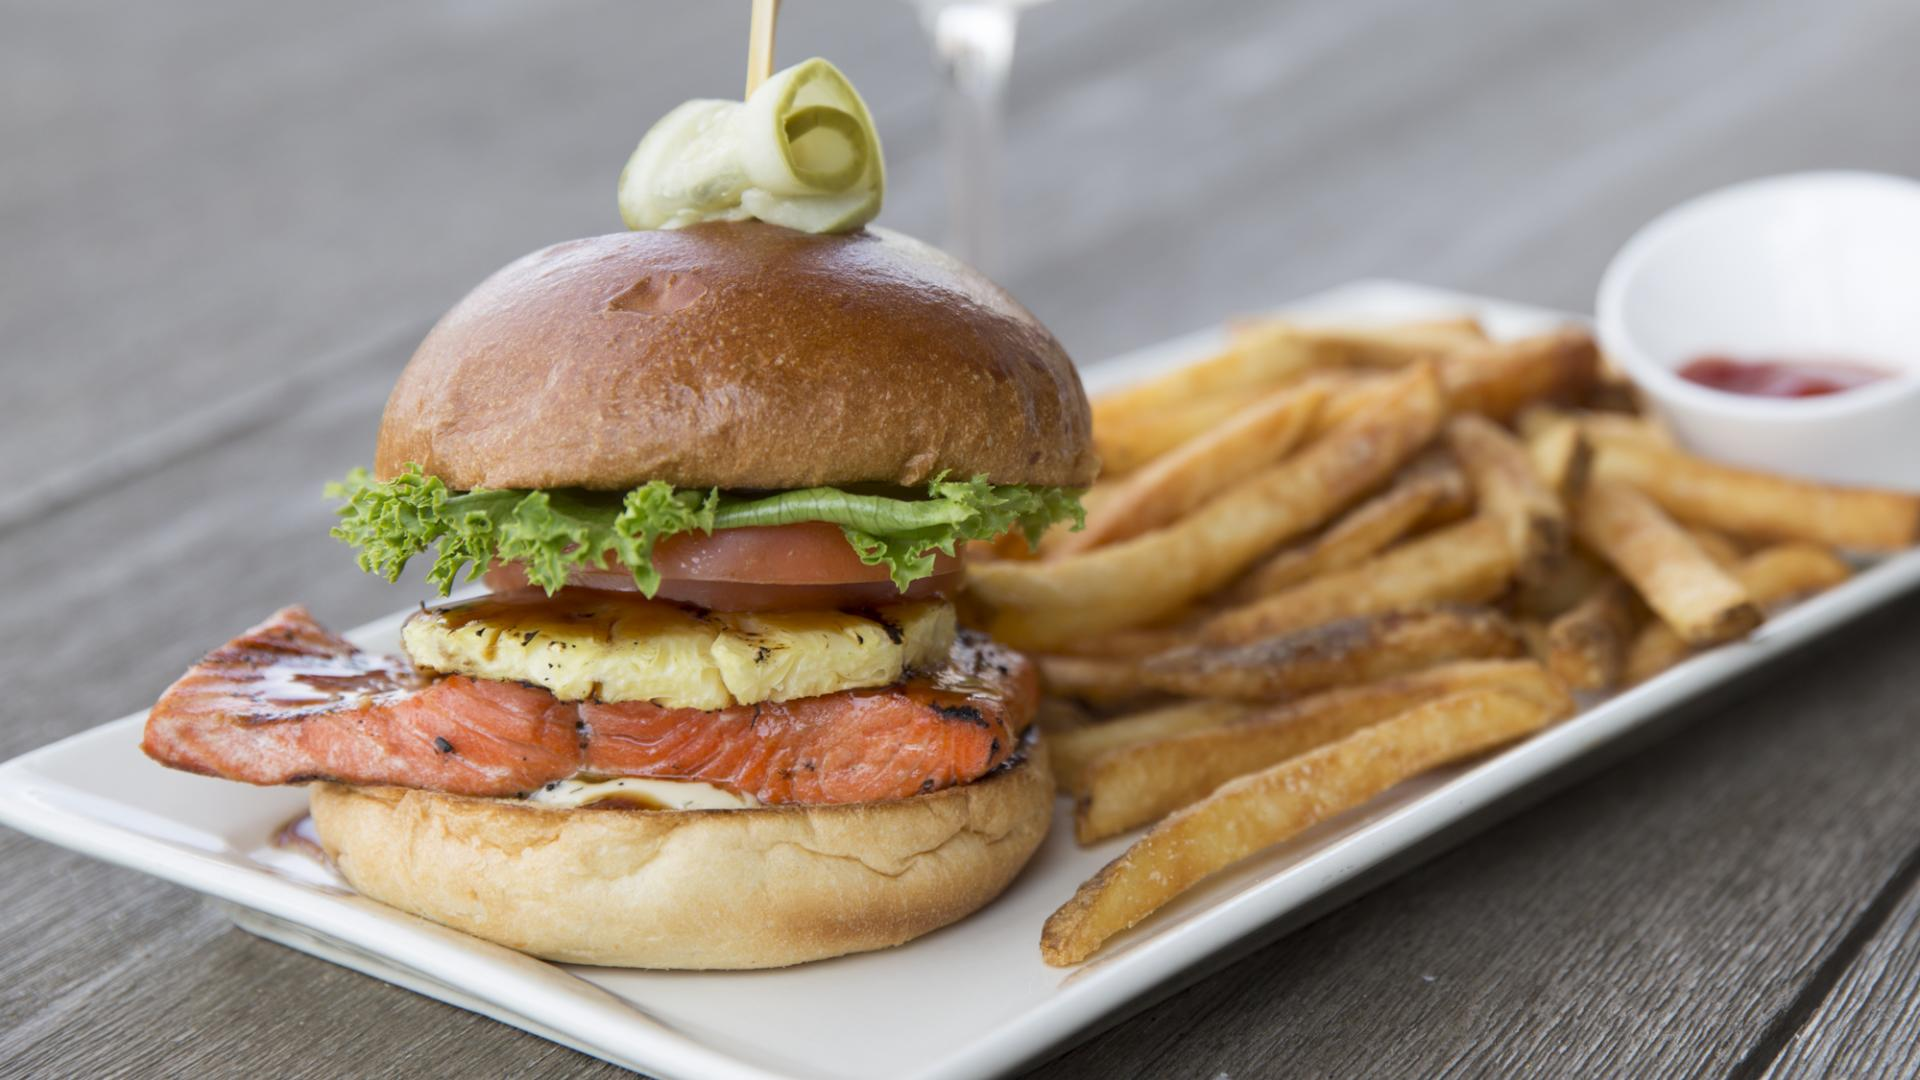 Grilled Salmon Burger - grilled pineapple, lettuce, tomato, teriyaki sauce and lemon aoli on a fresh brioche bun